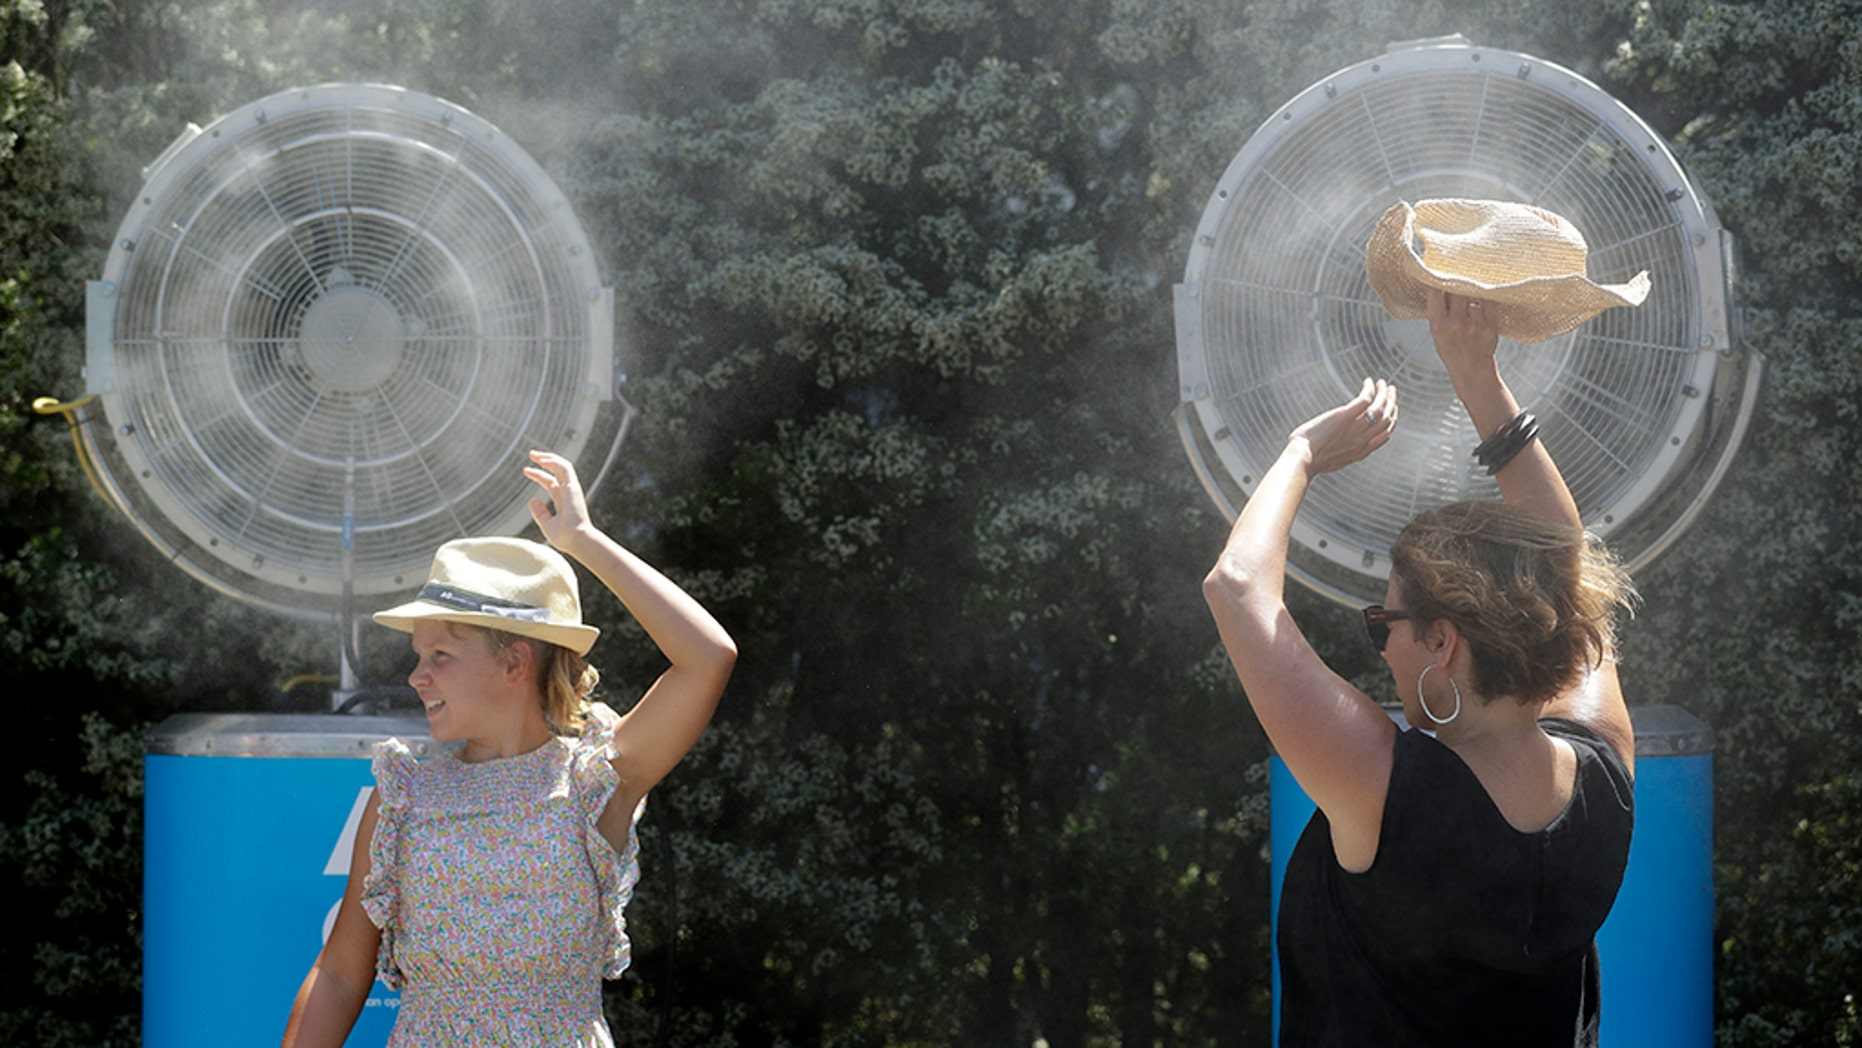 The past 4 days have been Australia's top 10 warmest days on record—and the trend looks like continuing through the weekend, according to forecasters.